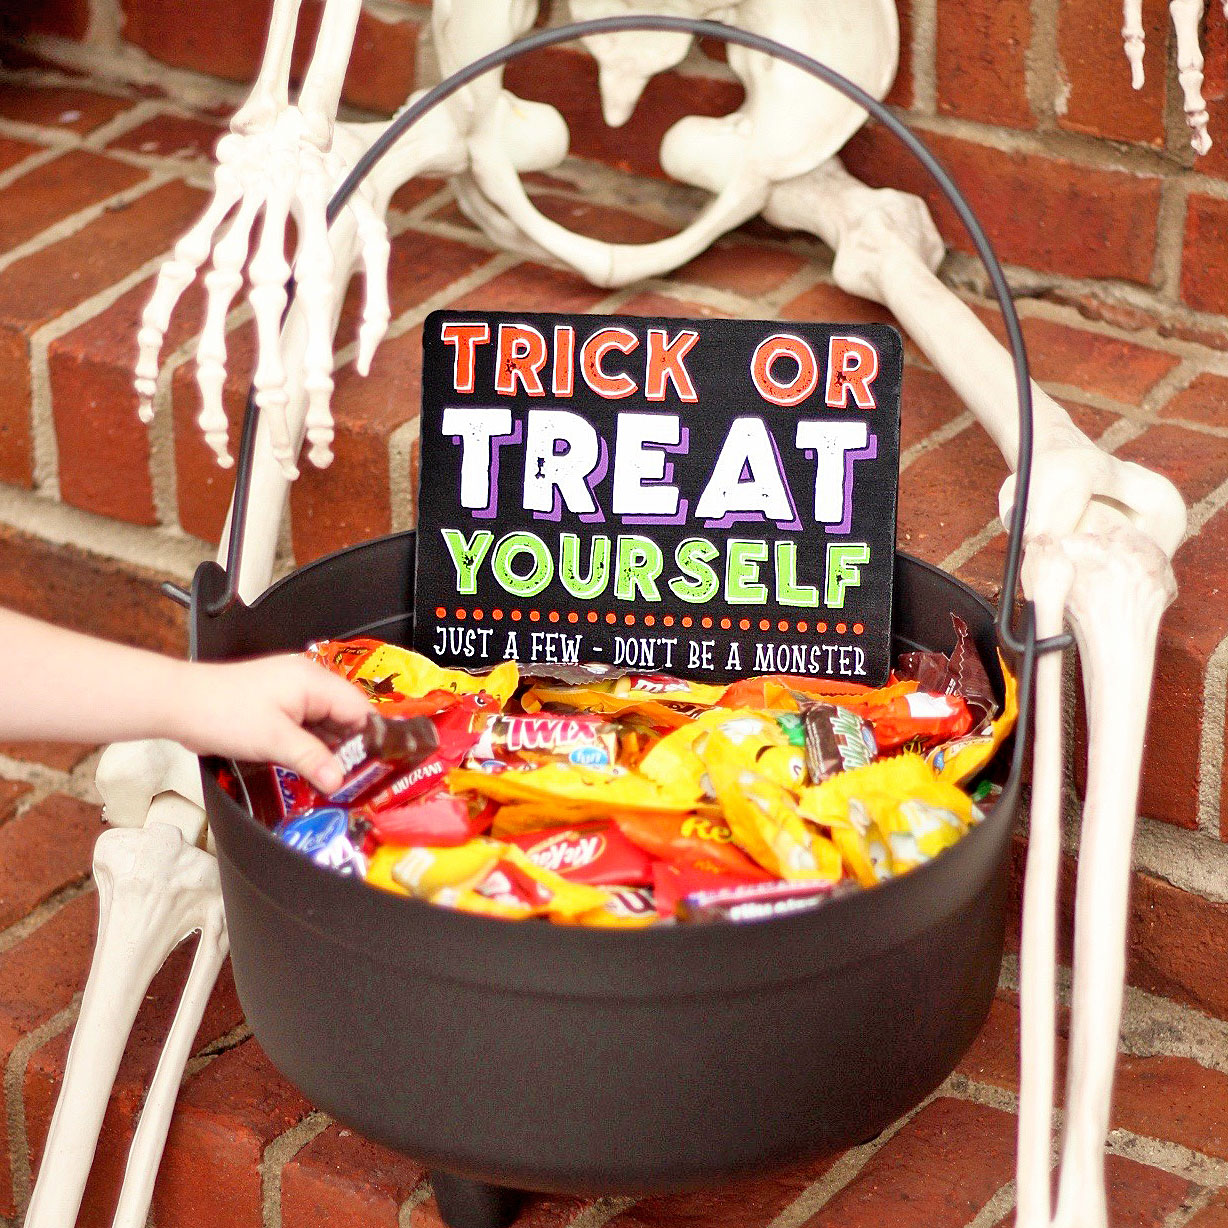 DIY 'Trick or Treat Yourself' Halloween Candy Bowl Sign